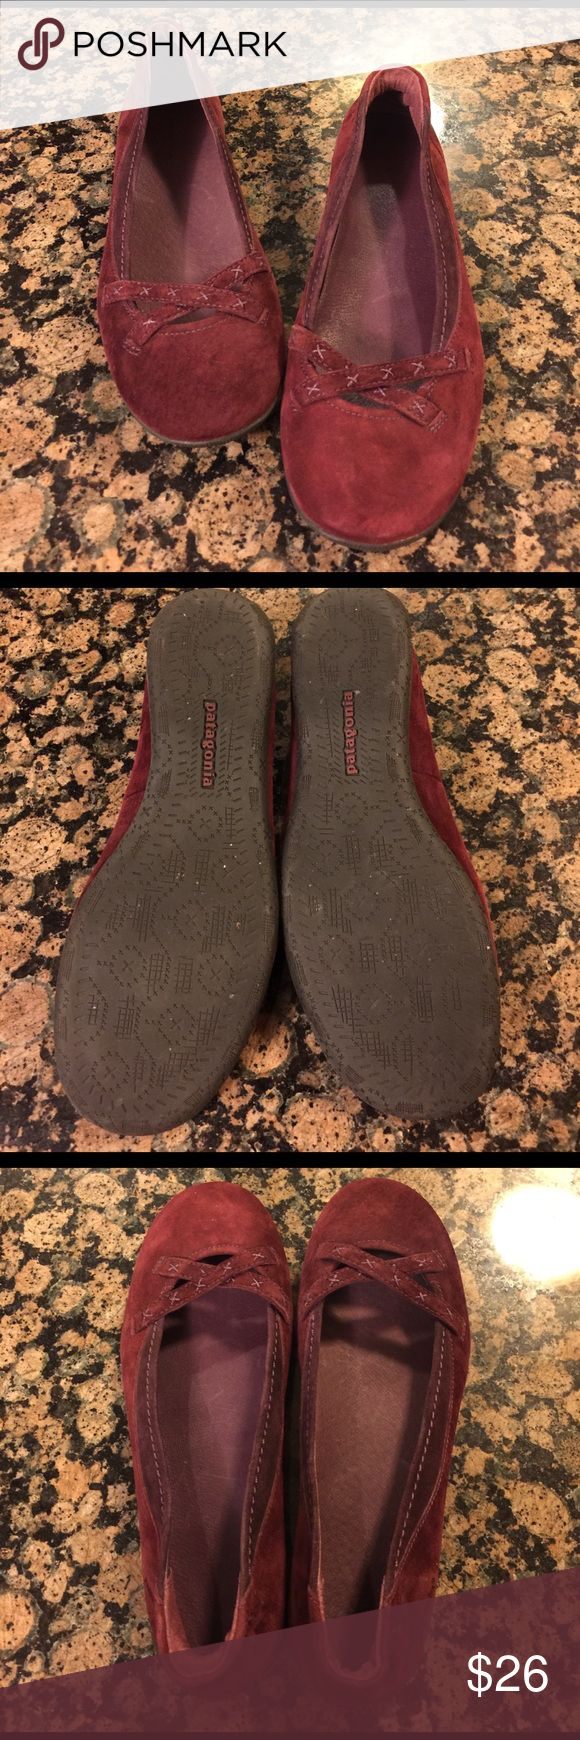 Patagonia flats These are gorgeous deep red plum colored flats by Patagonia. Pretty stitched detail. Quite comfortable. Only worn a few times. Size 7 but run a bit small IMO. EUC! Patagonia Shoes Flats & Loafers